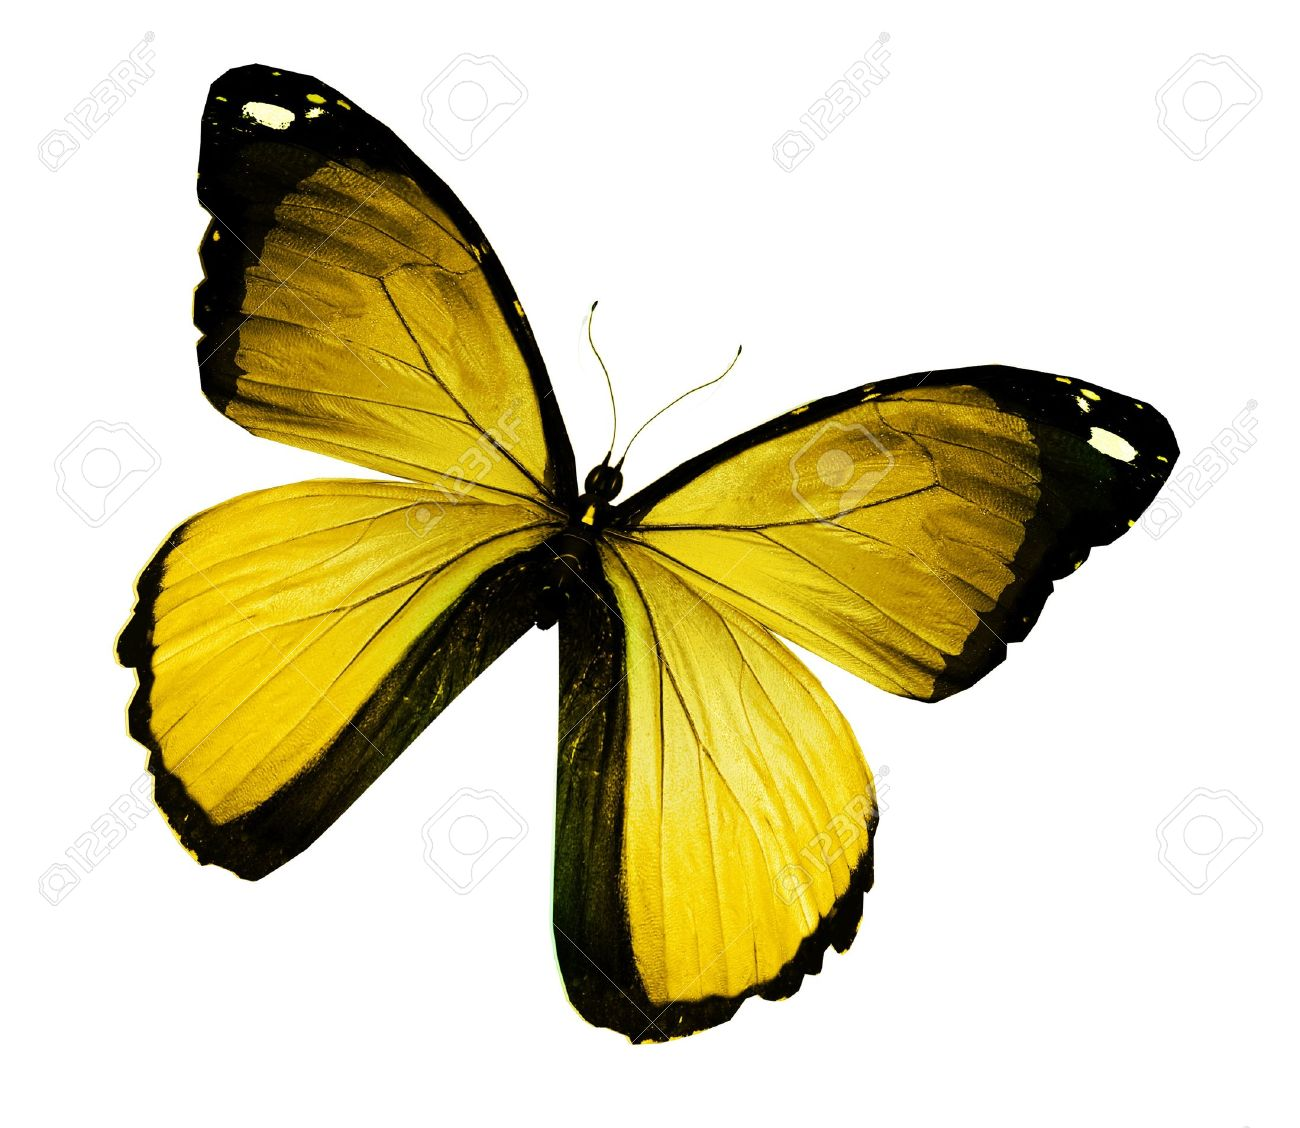 yellow butterfly images u0026 stock pictures royalty free yellow